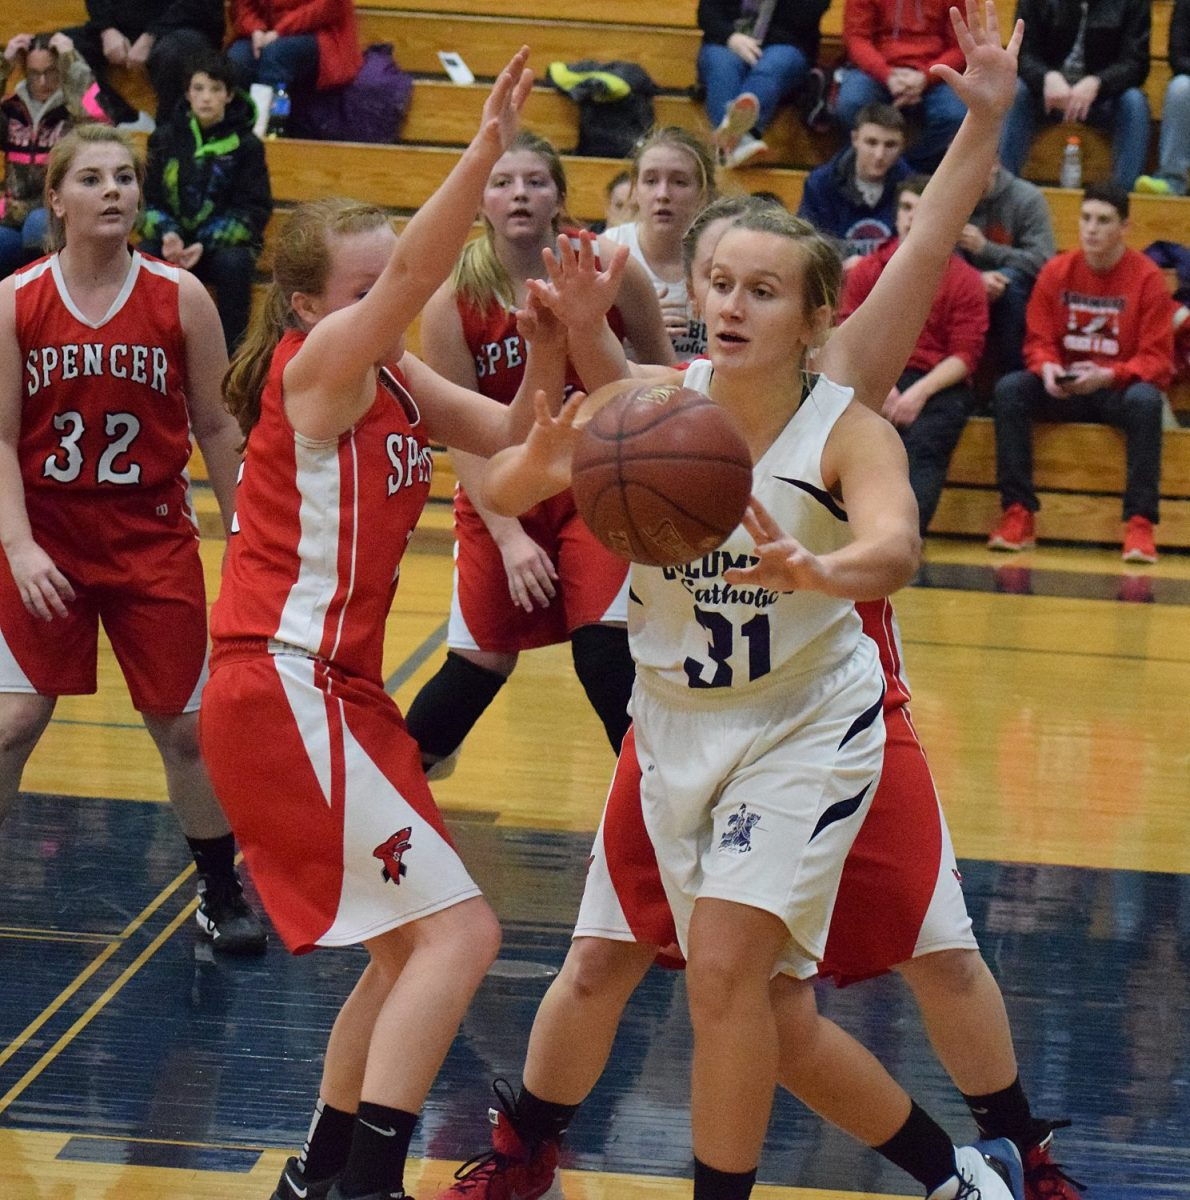 Columbus Catholic's Marissa Immerfall passes the ball out of traffic as she is surrounded by the Spencer defense during a game Dec. 11 at Columbus Catholic High School. Paul Lecker photo